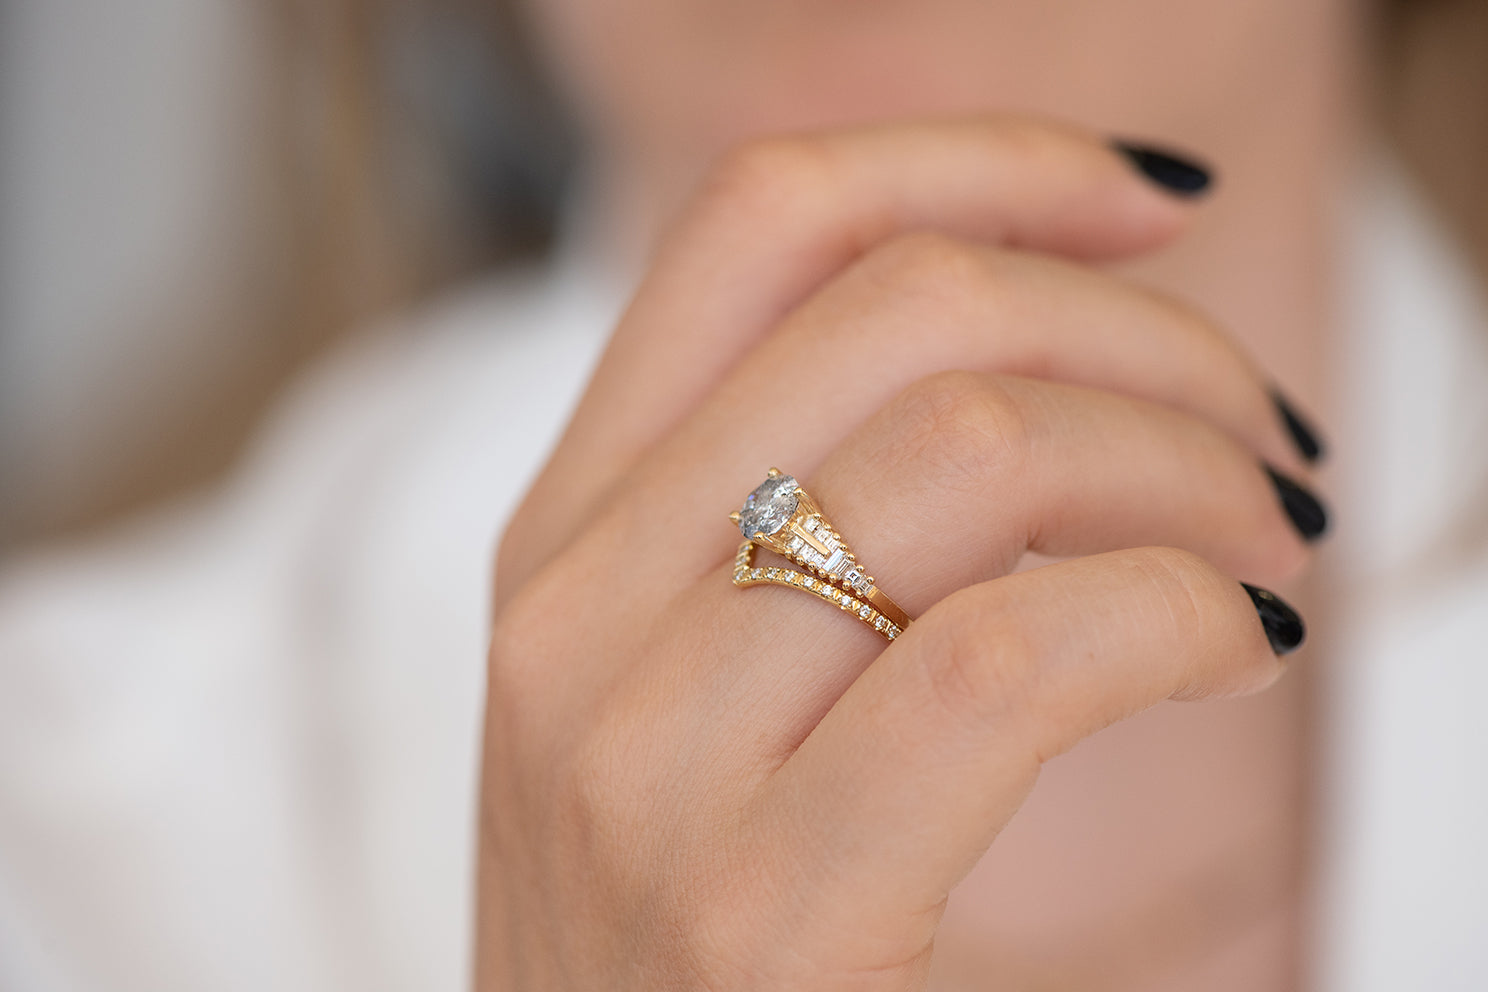 One Carat Diamond Ring with a Snowy Diamond on Hand in set side view